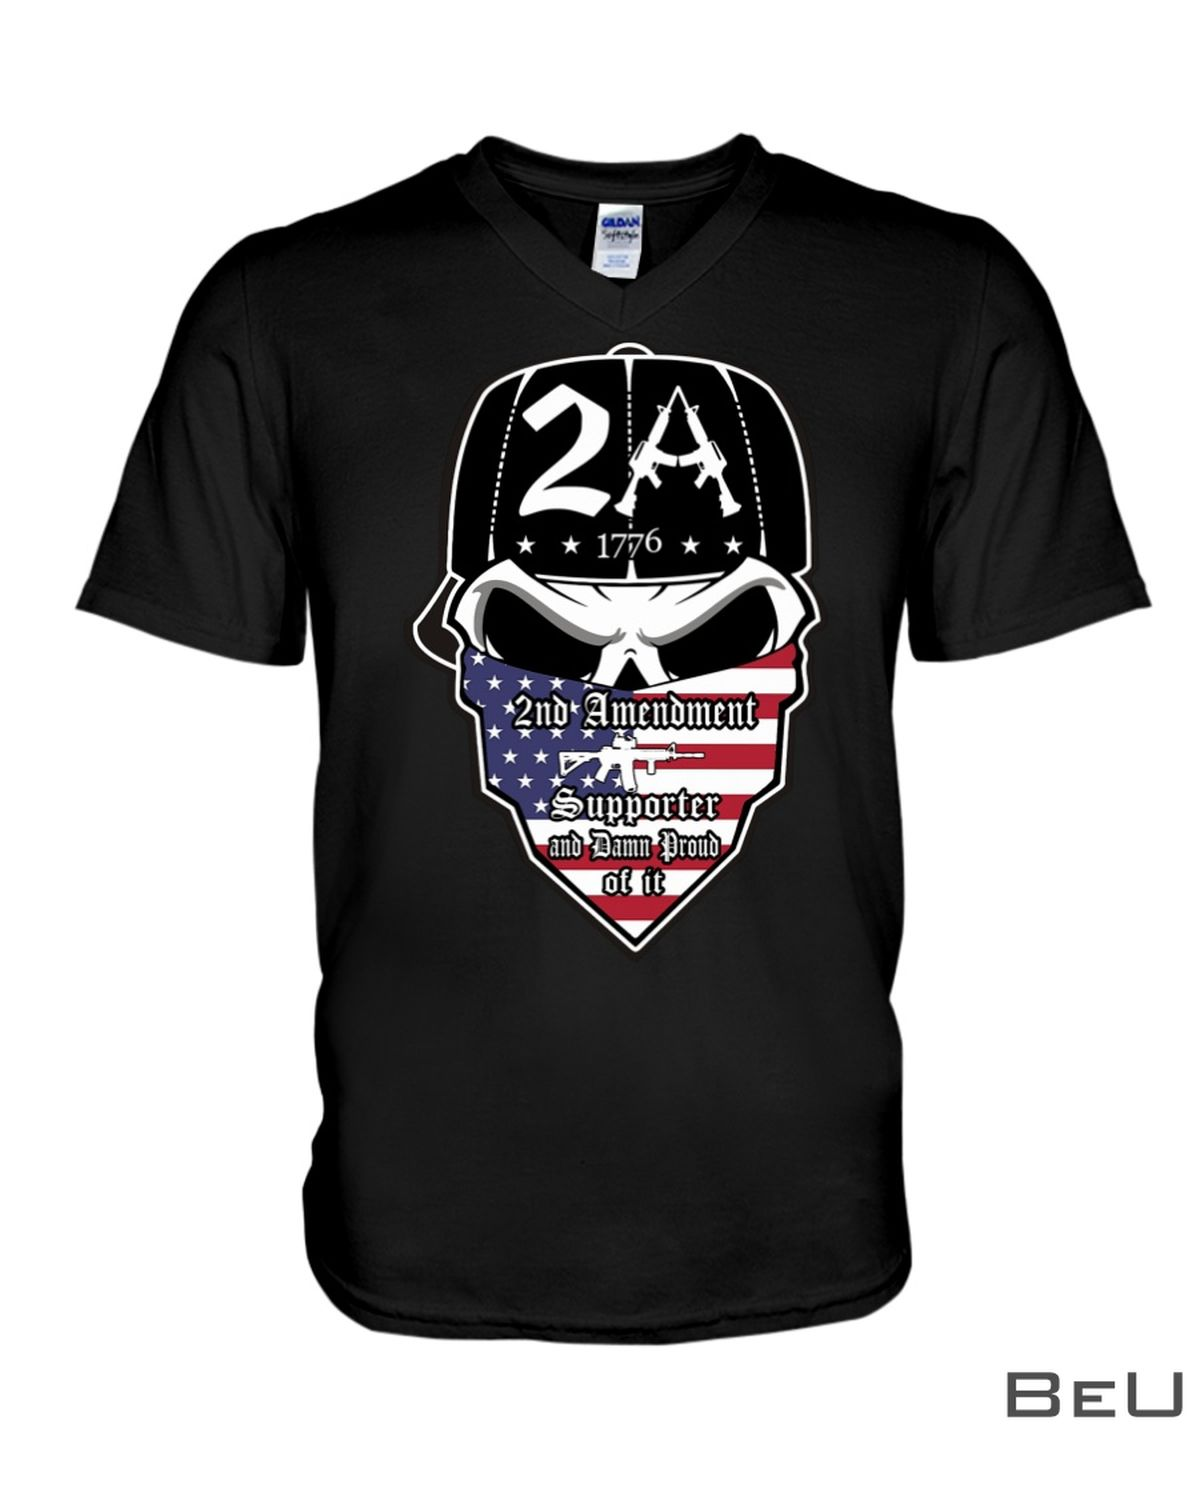 2A 1776 2nd Amendment Supporter And Damn Proud Of It Skull Shirtx